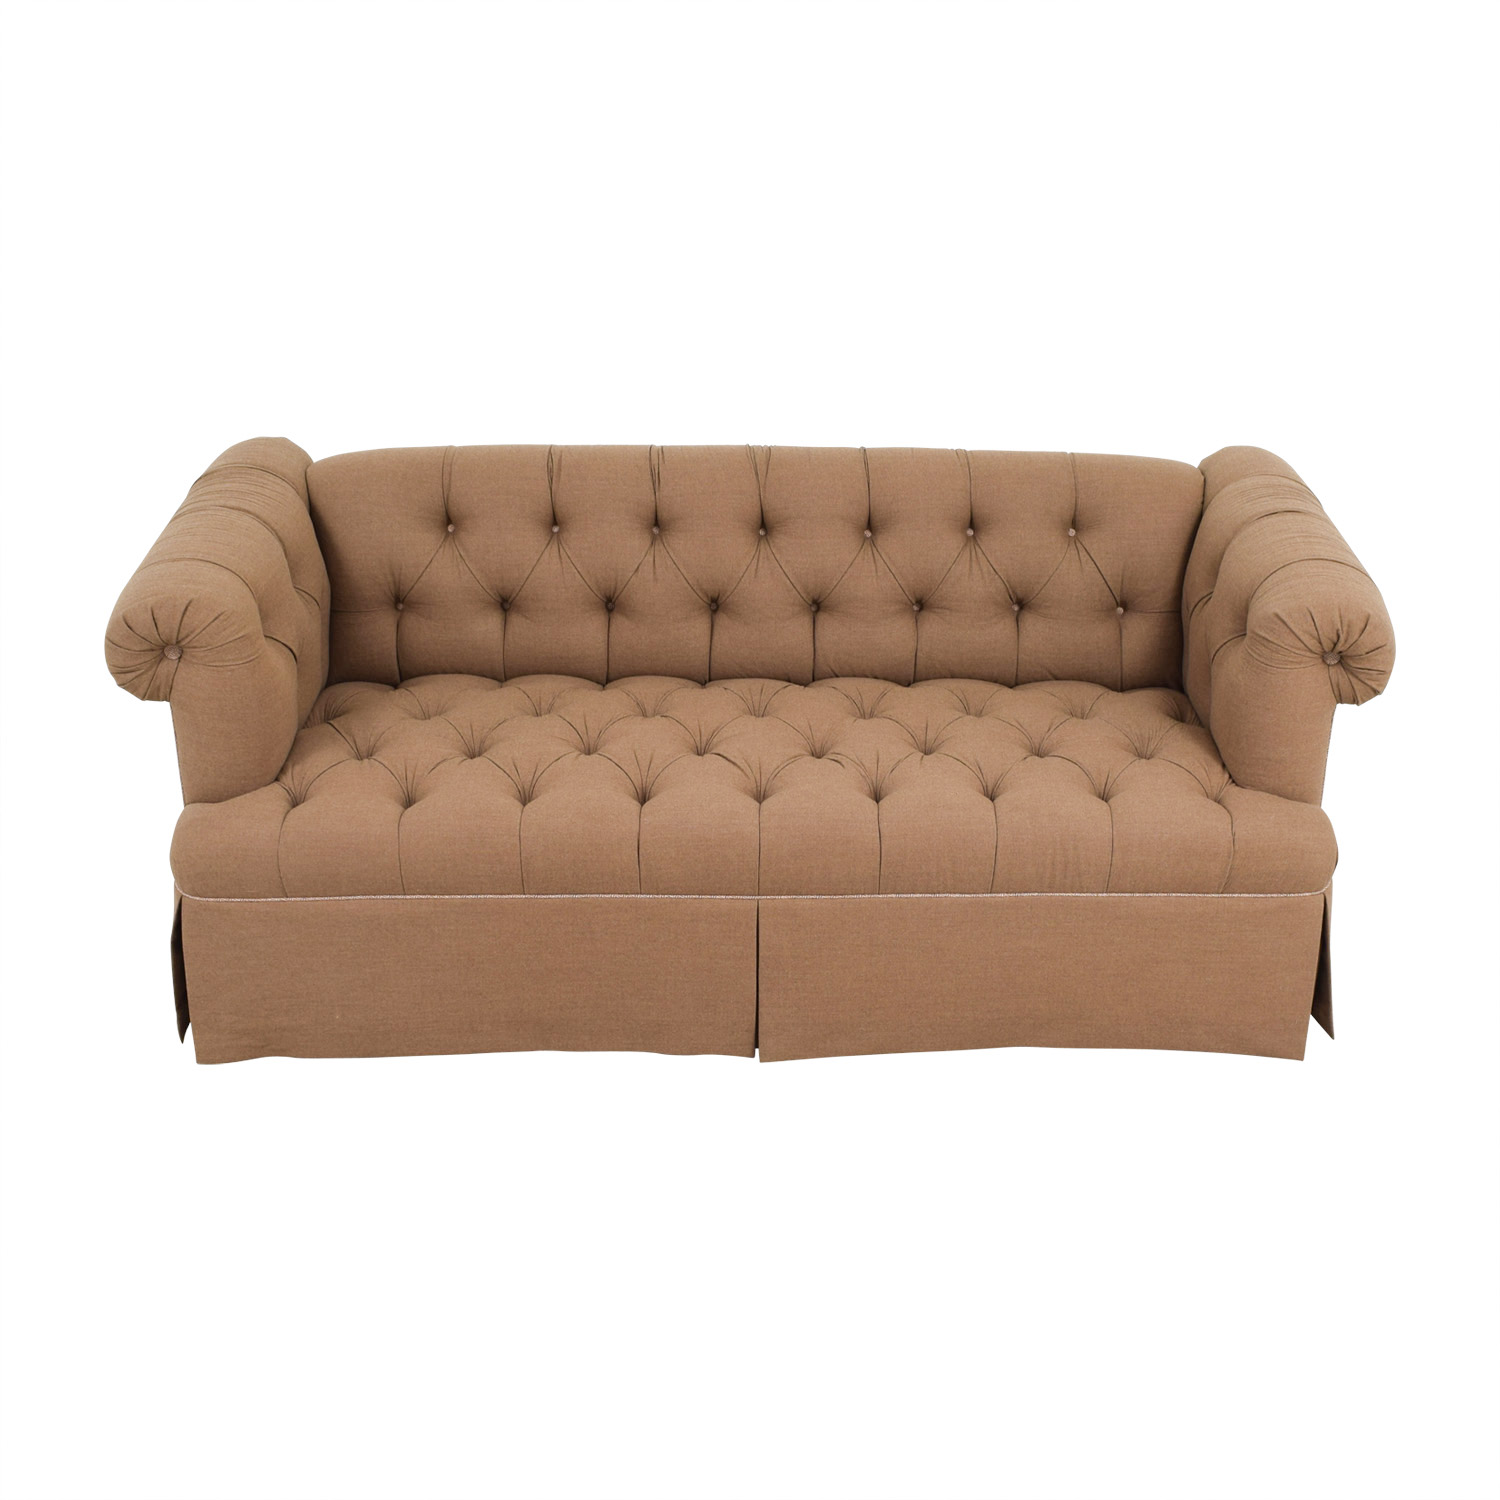 Furniture Masters Furniture Masters Custom Brown Tufted Sofa Sofas